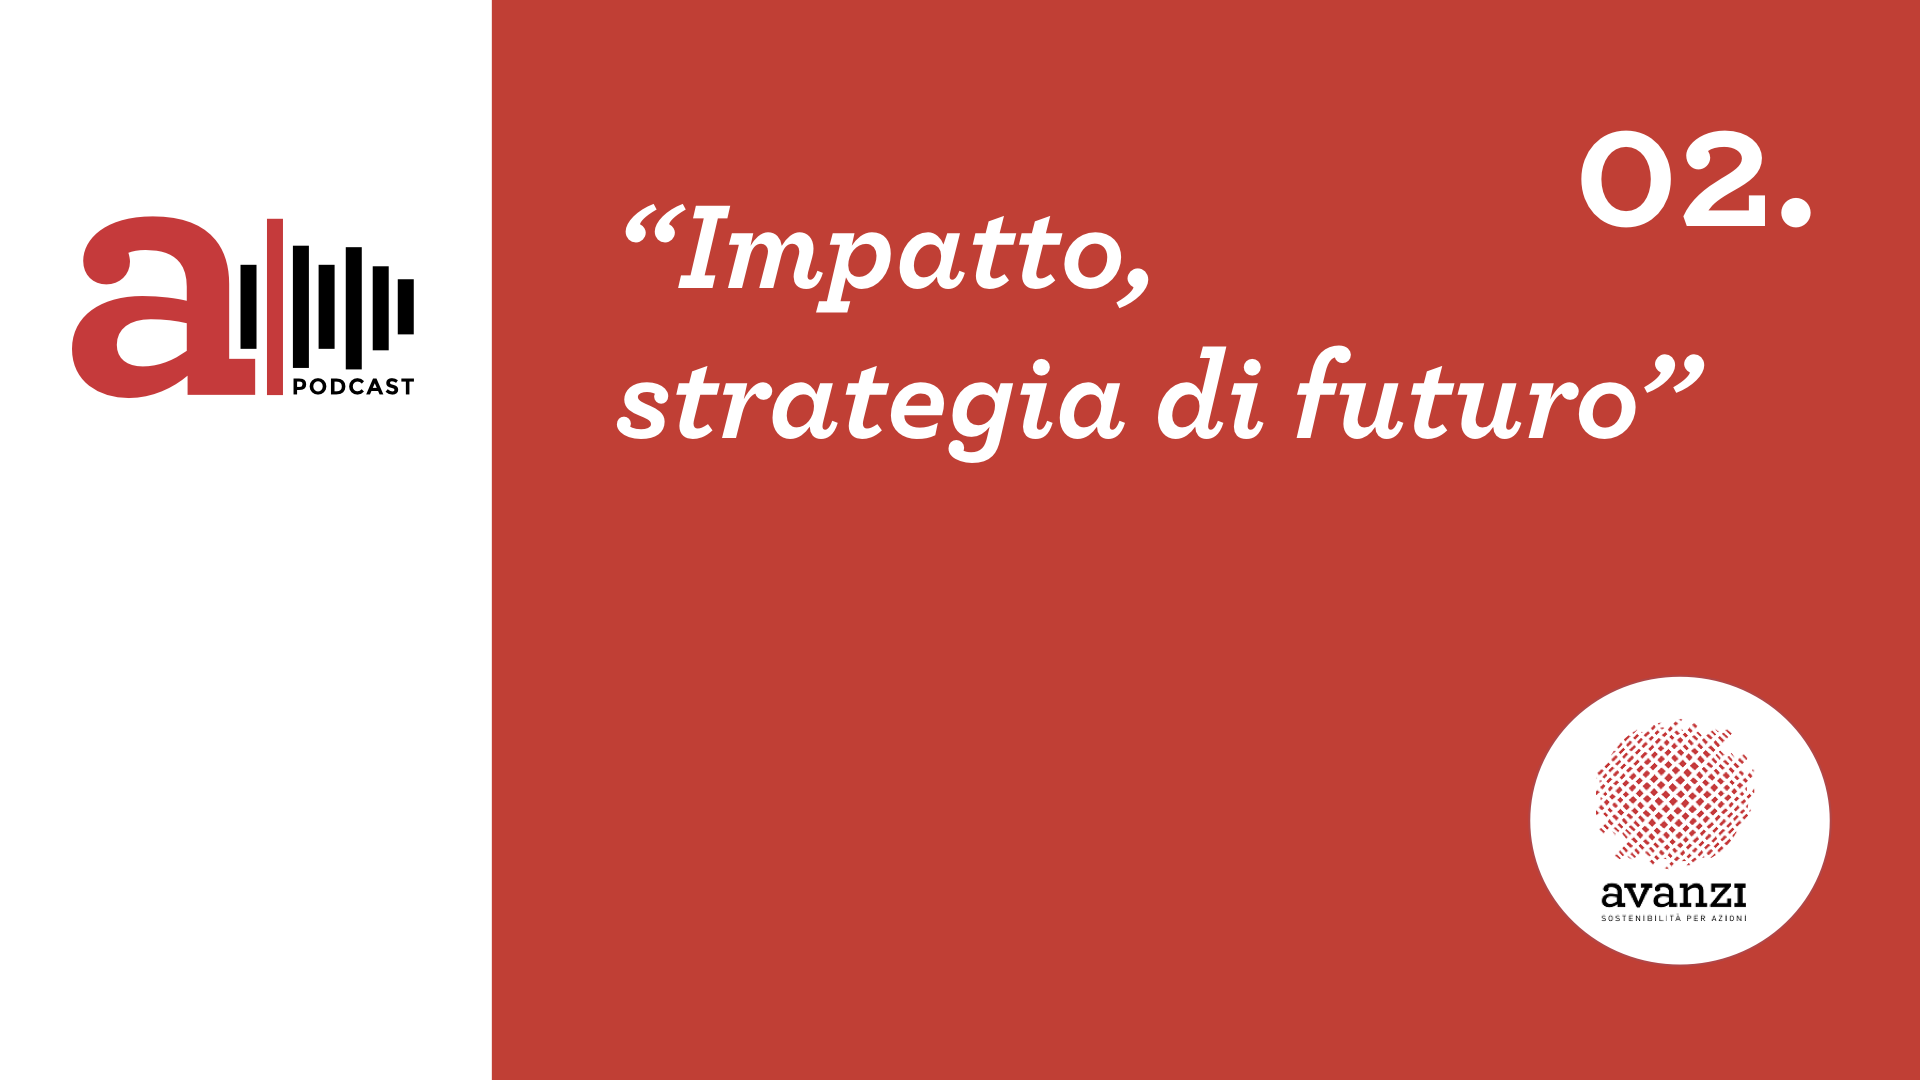 a|podcast. Secondo episodio: Impatto come strategia di futuro